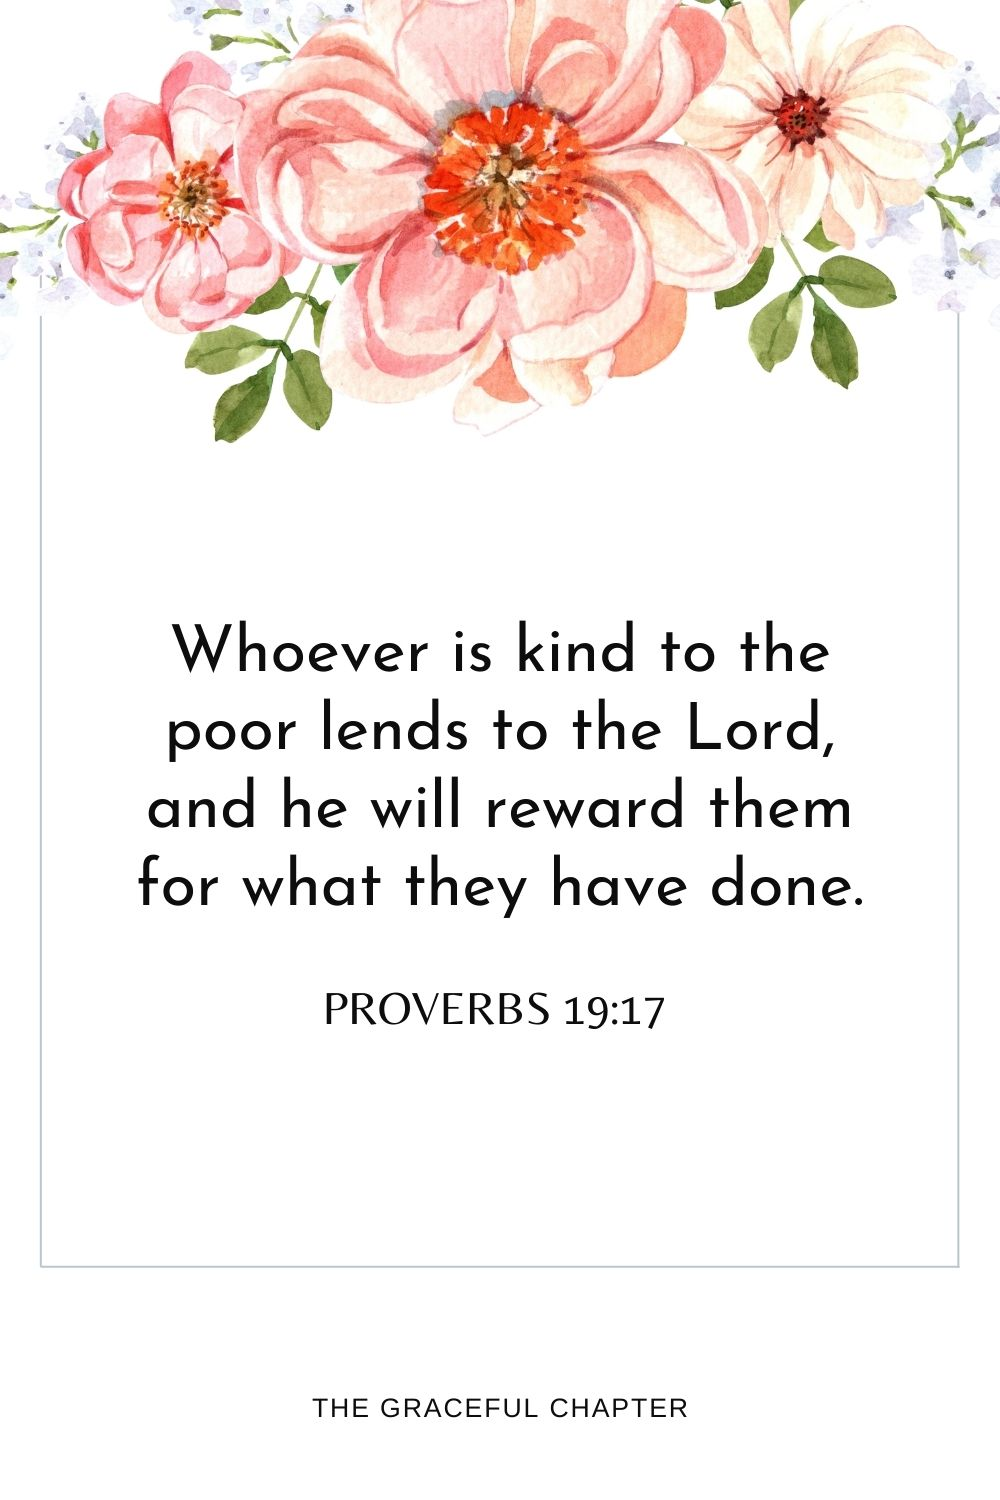 Whoever is kind to the poor lends to theLord, and he will reward them for what they have done. Proverbs 19:17